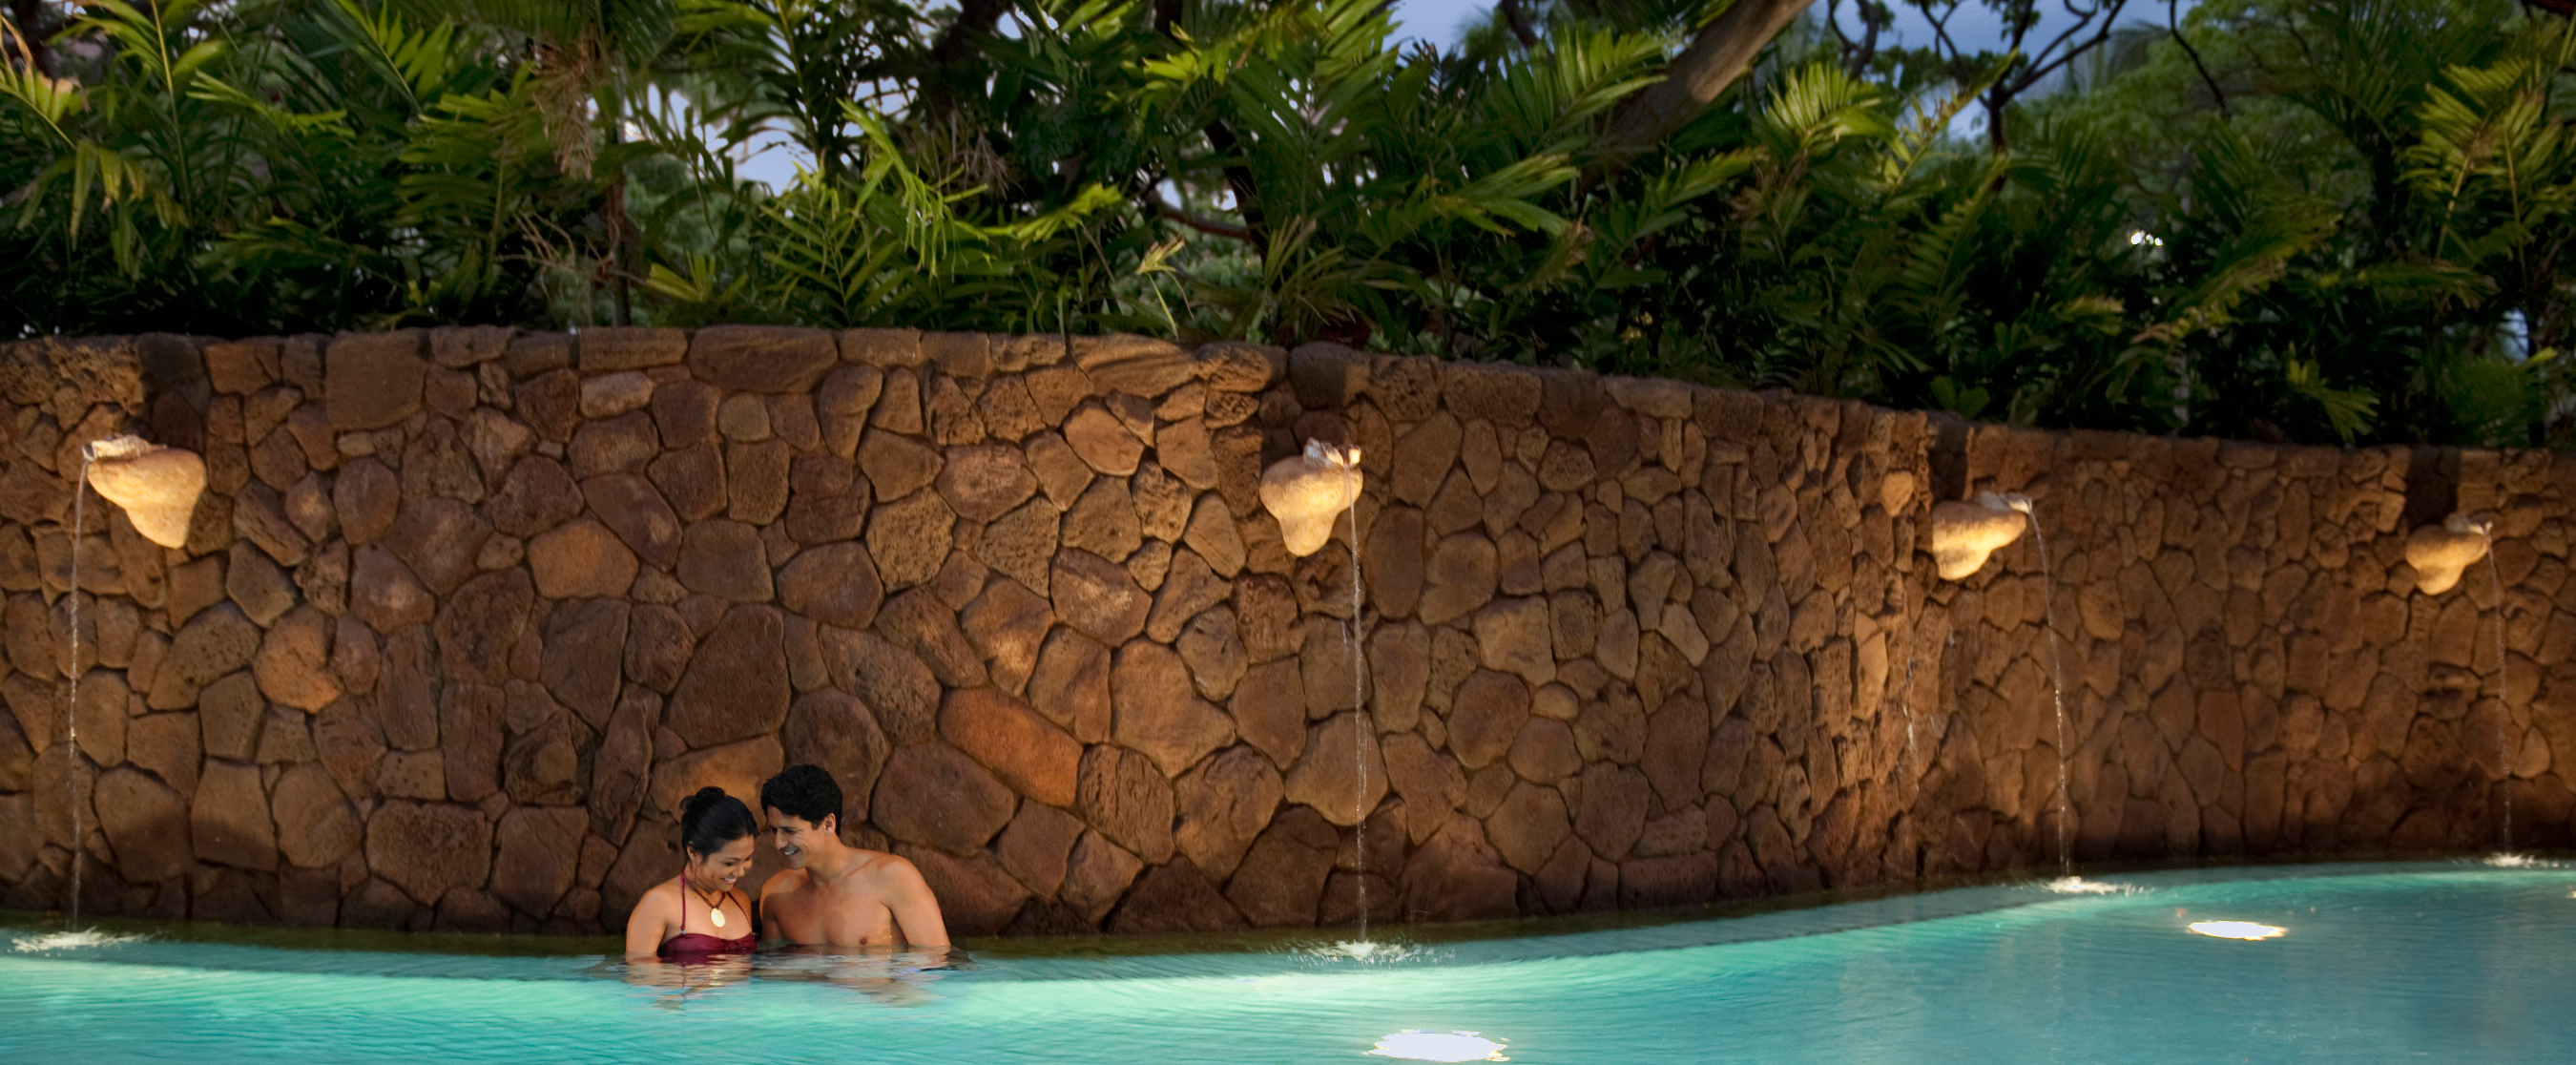 A couple shares a laugh as they stand together in the adults-only Wailana pool at Aulani Resort and Spa